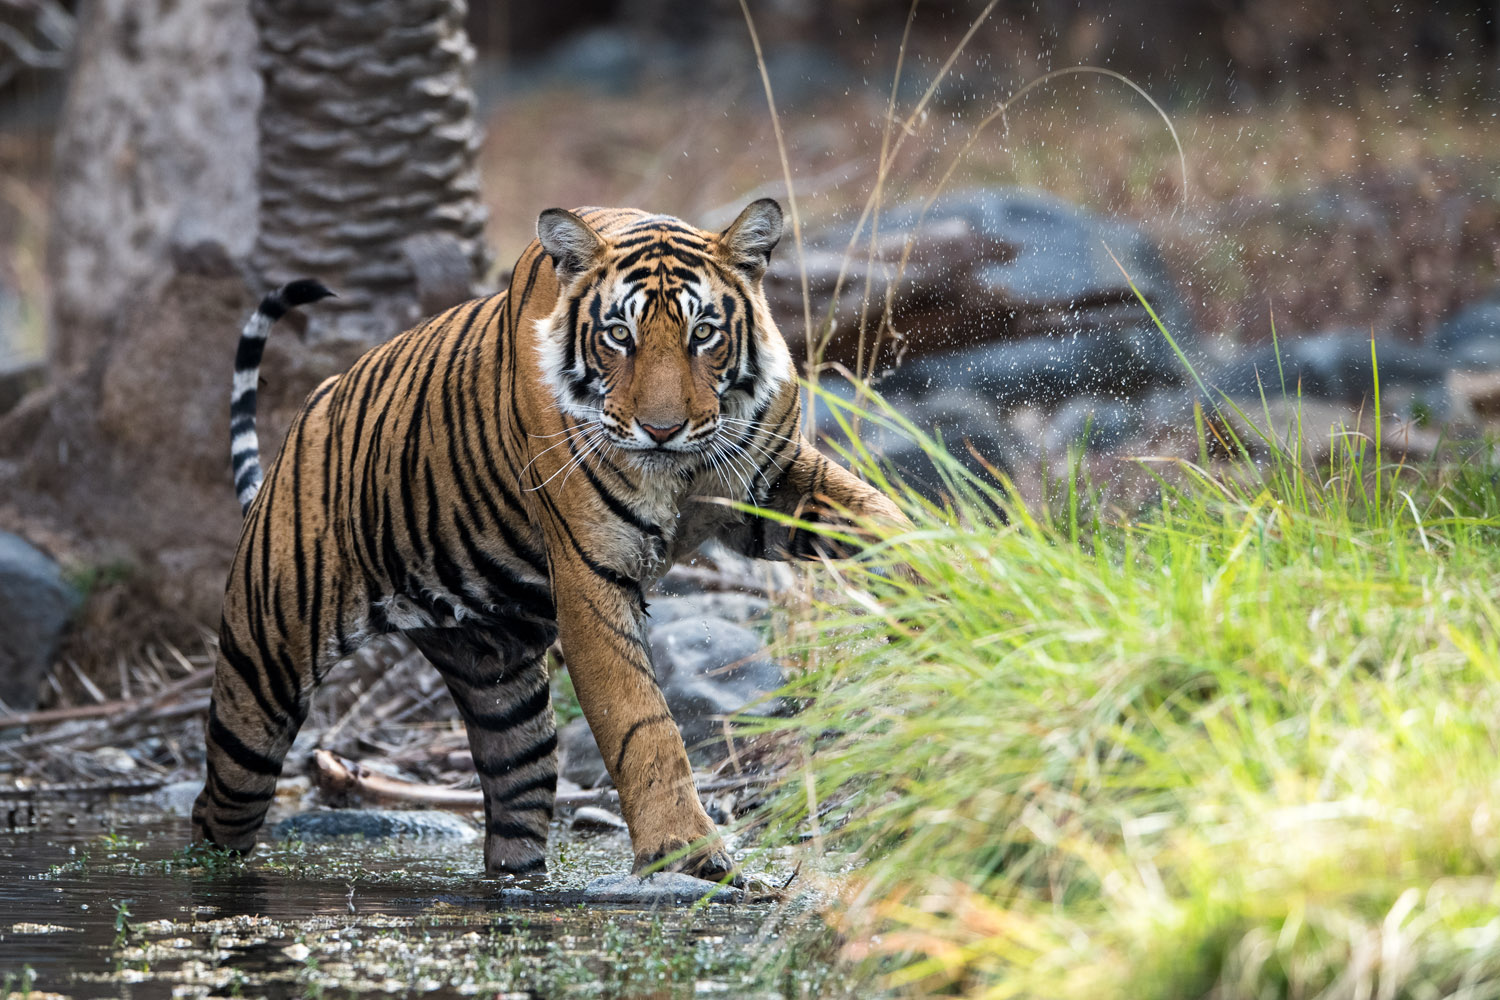 Bengal tiger at edge of stream, Ranthambhore National Park, Rajasthan, India